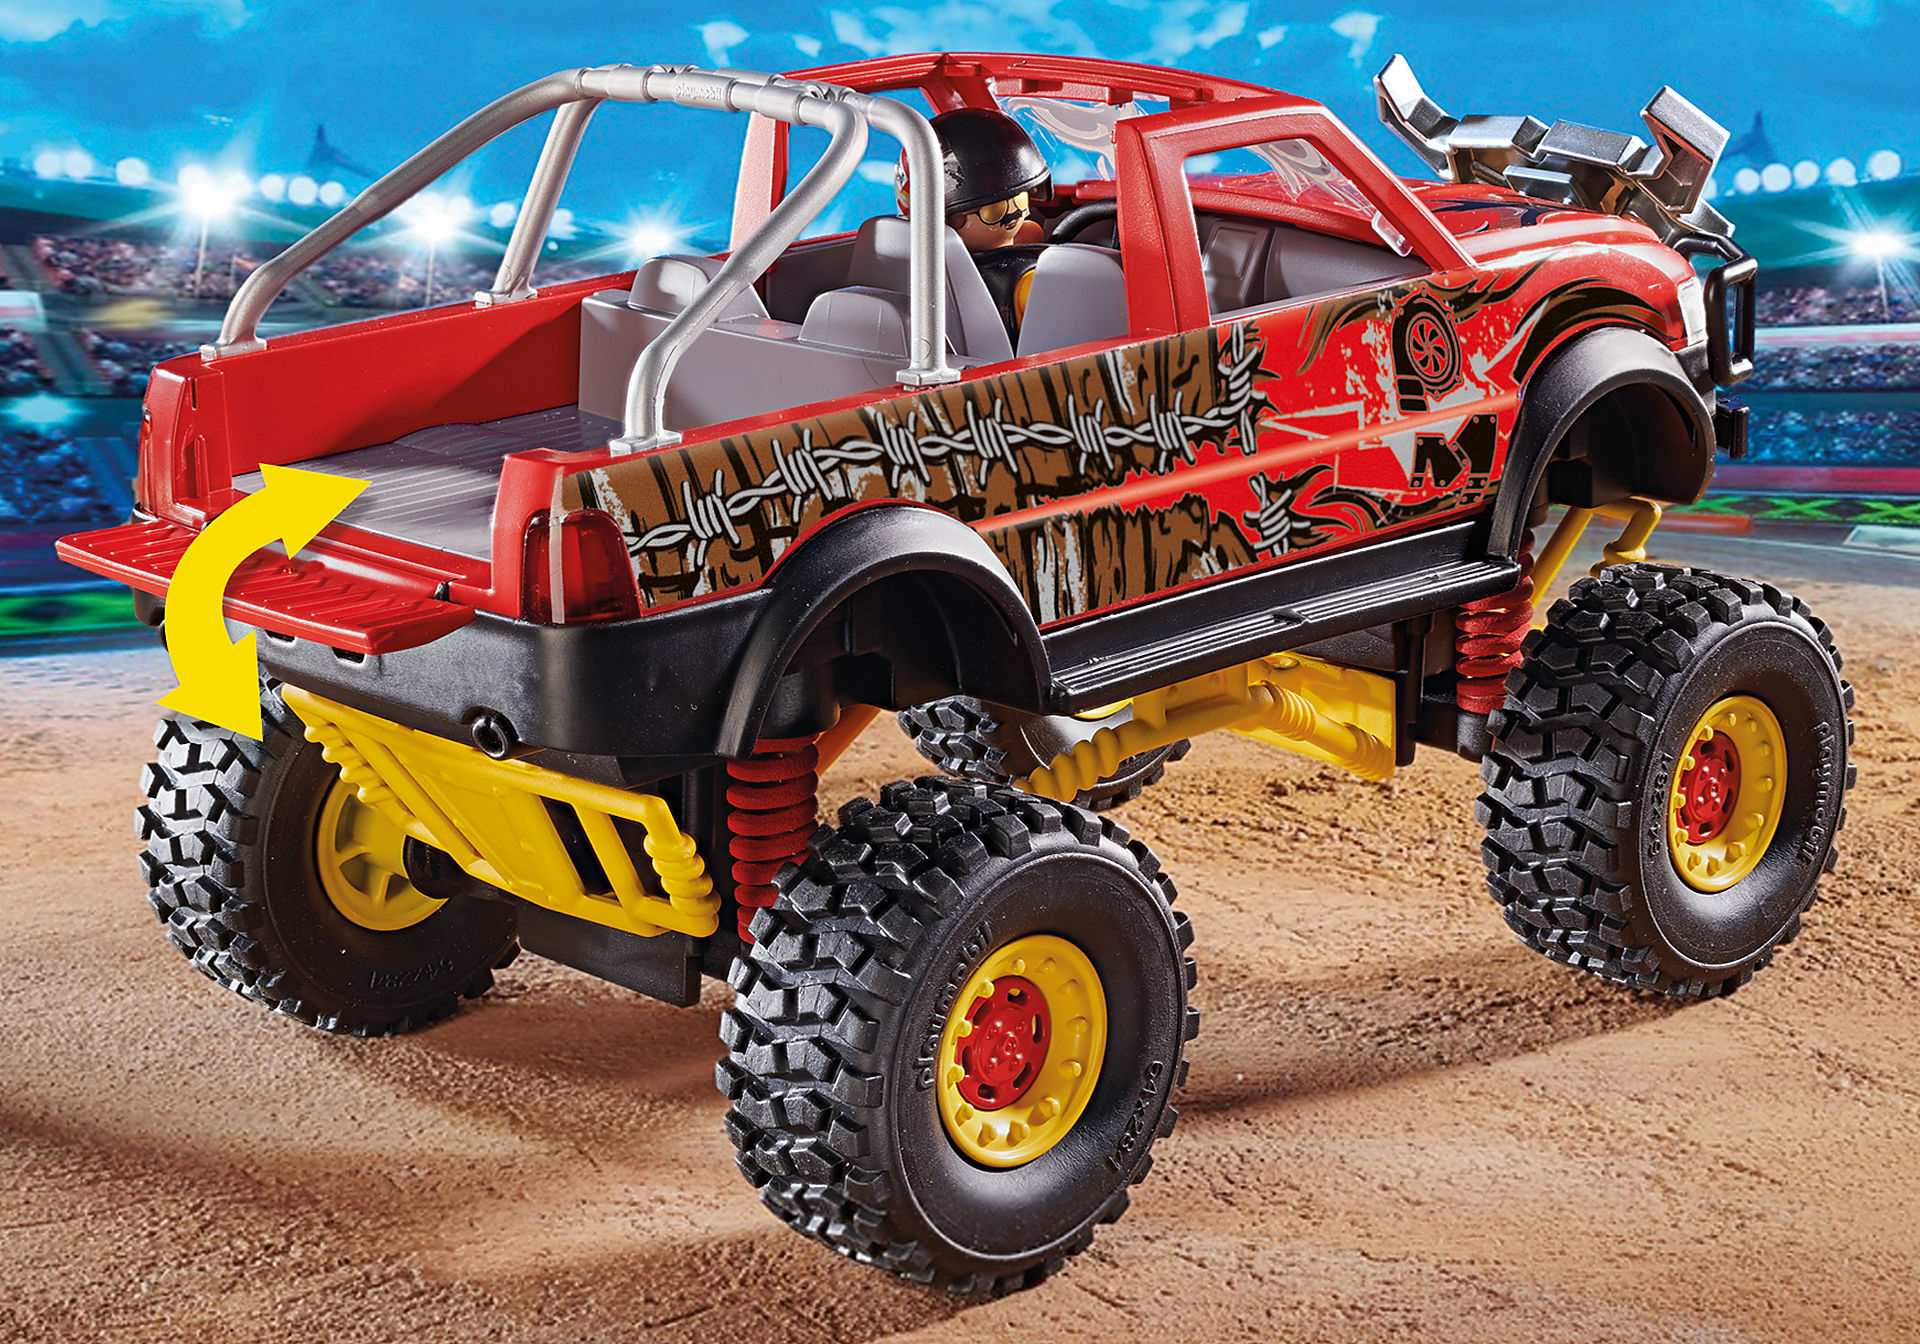 70549 Stuntshow Monster Truck met hoorns zoom image5